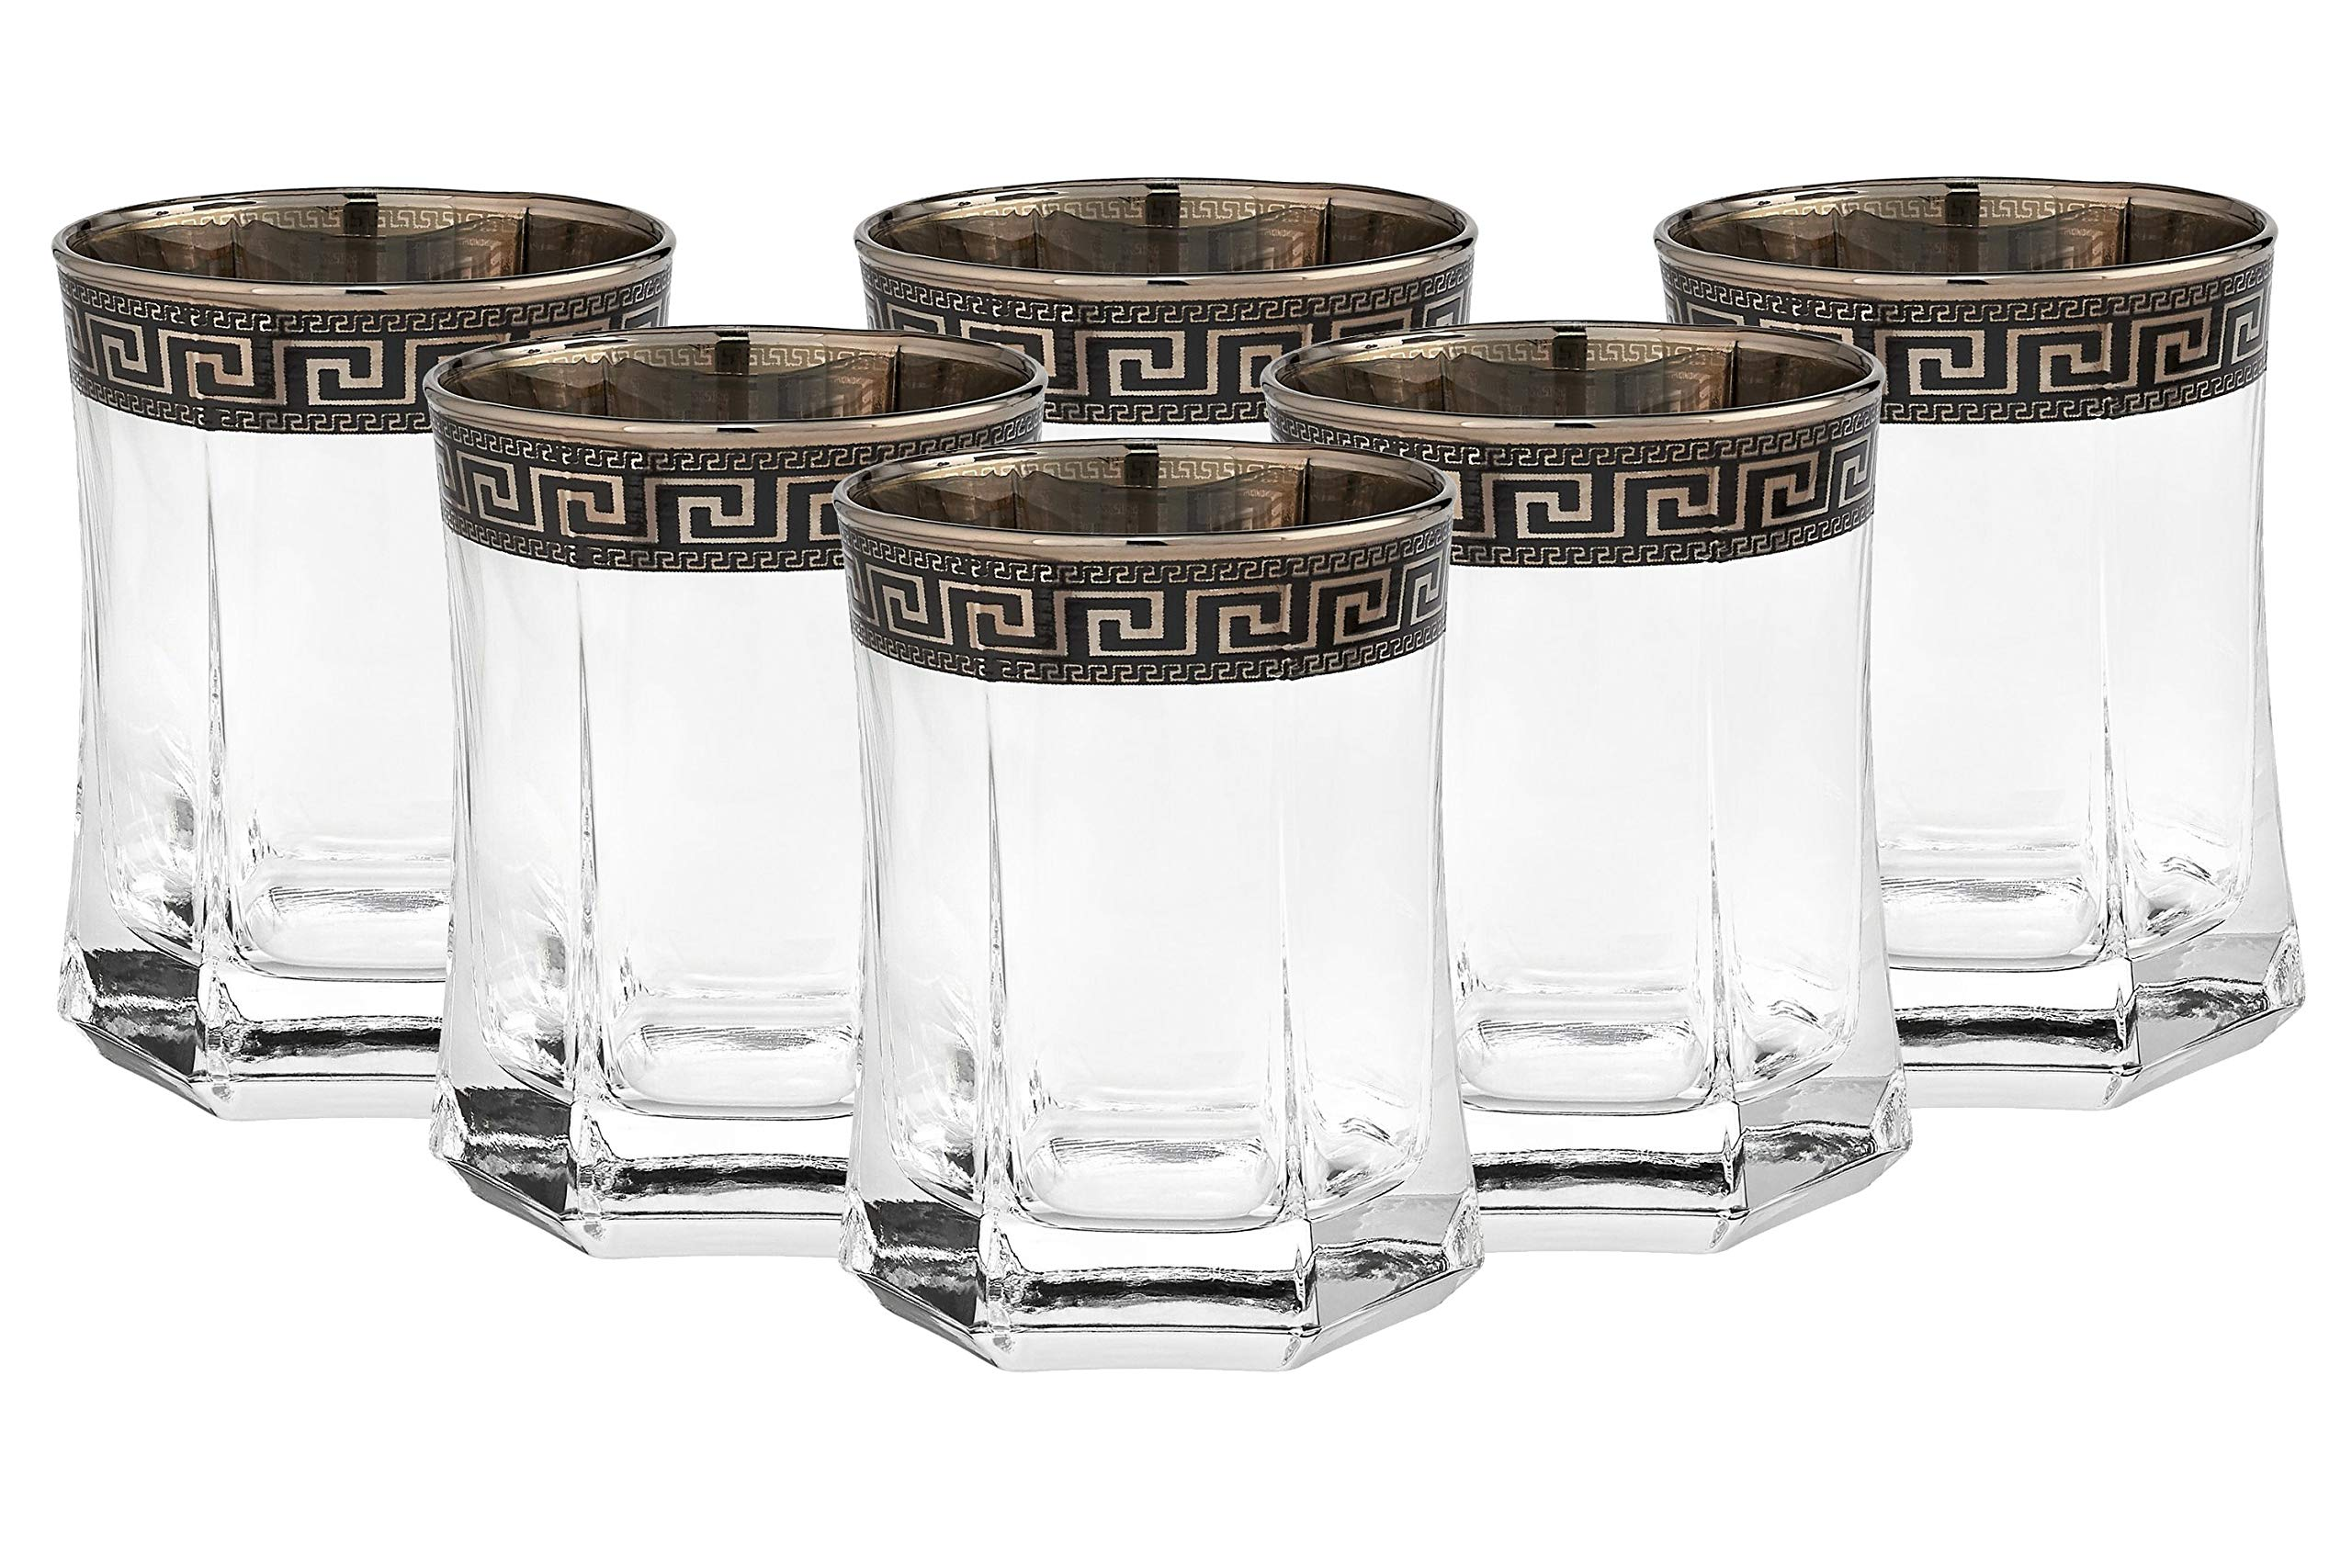 ''Cristalleria Italian Decor'' Crystal Double Old-Fashioned Whisky Rocks Glasses, 10 oz. Platinum Greek Key Ornament, Hand Made in Italy, SET OF 6